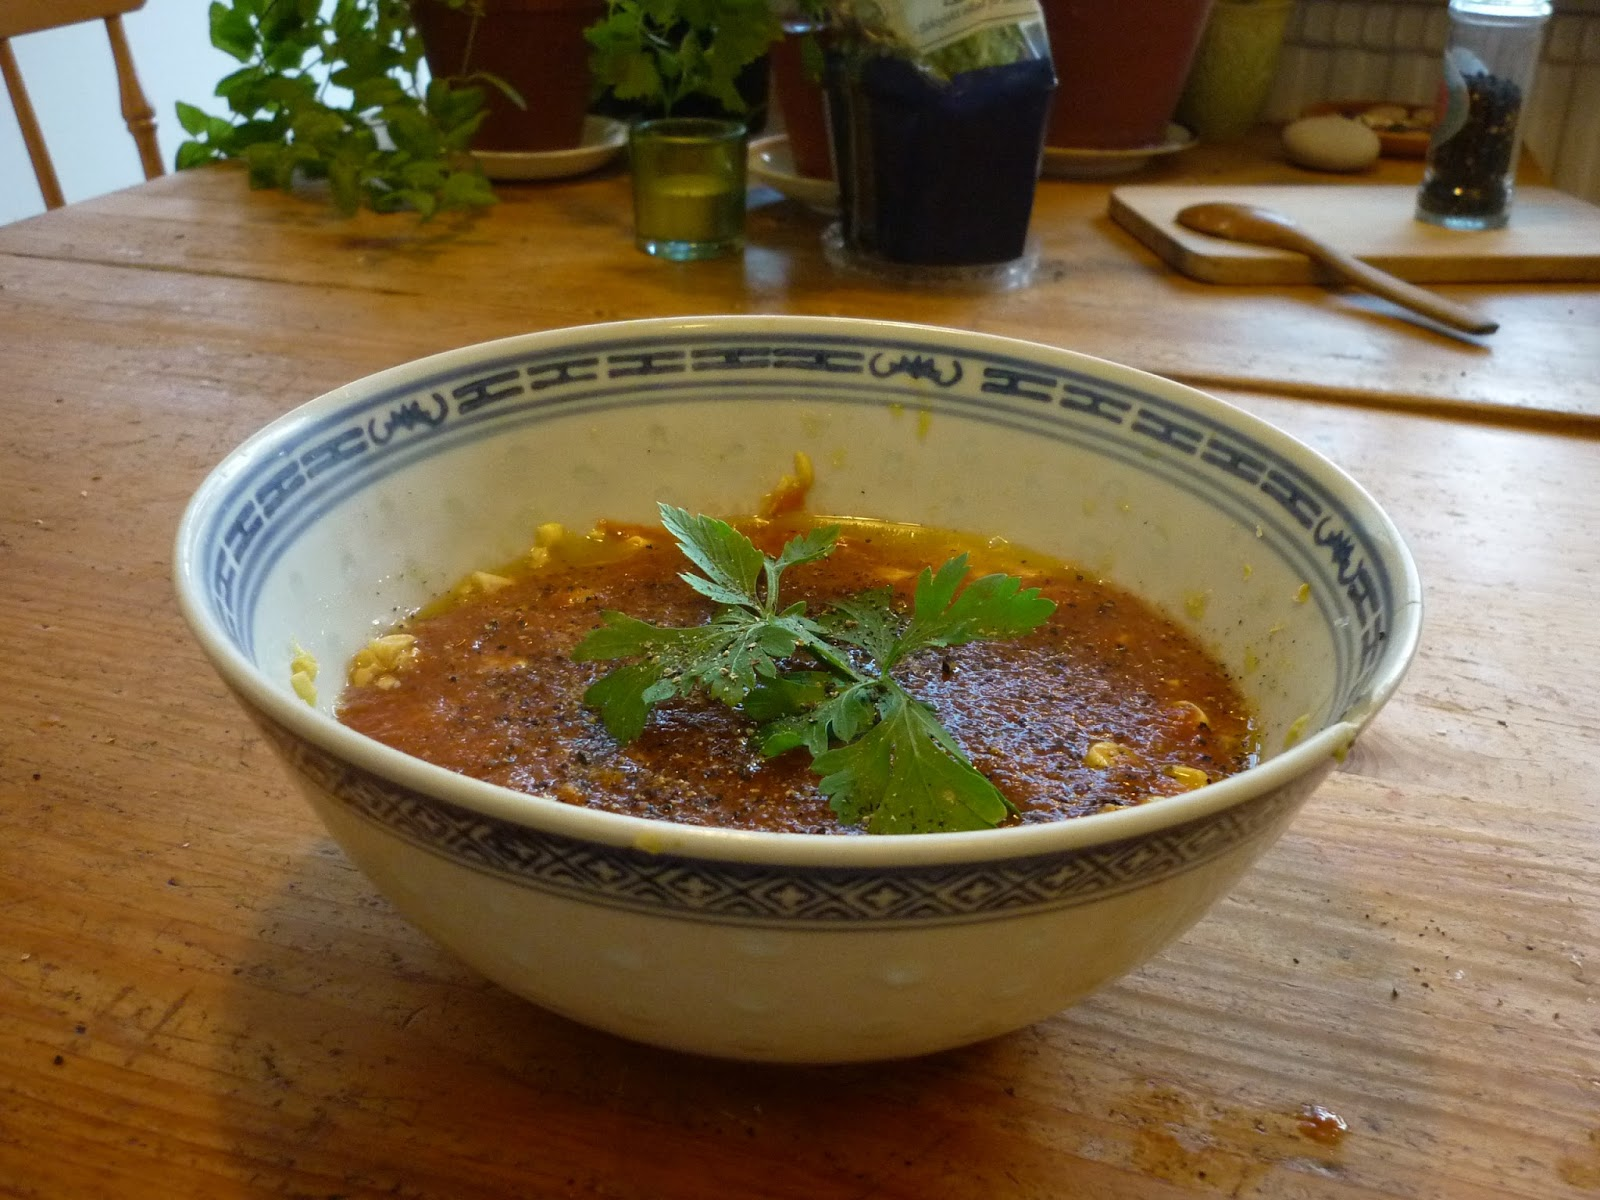 Food to Change the World: Sweet Chipotle Tomato Soup with Corn